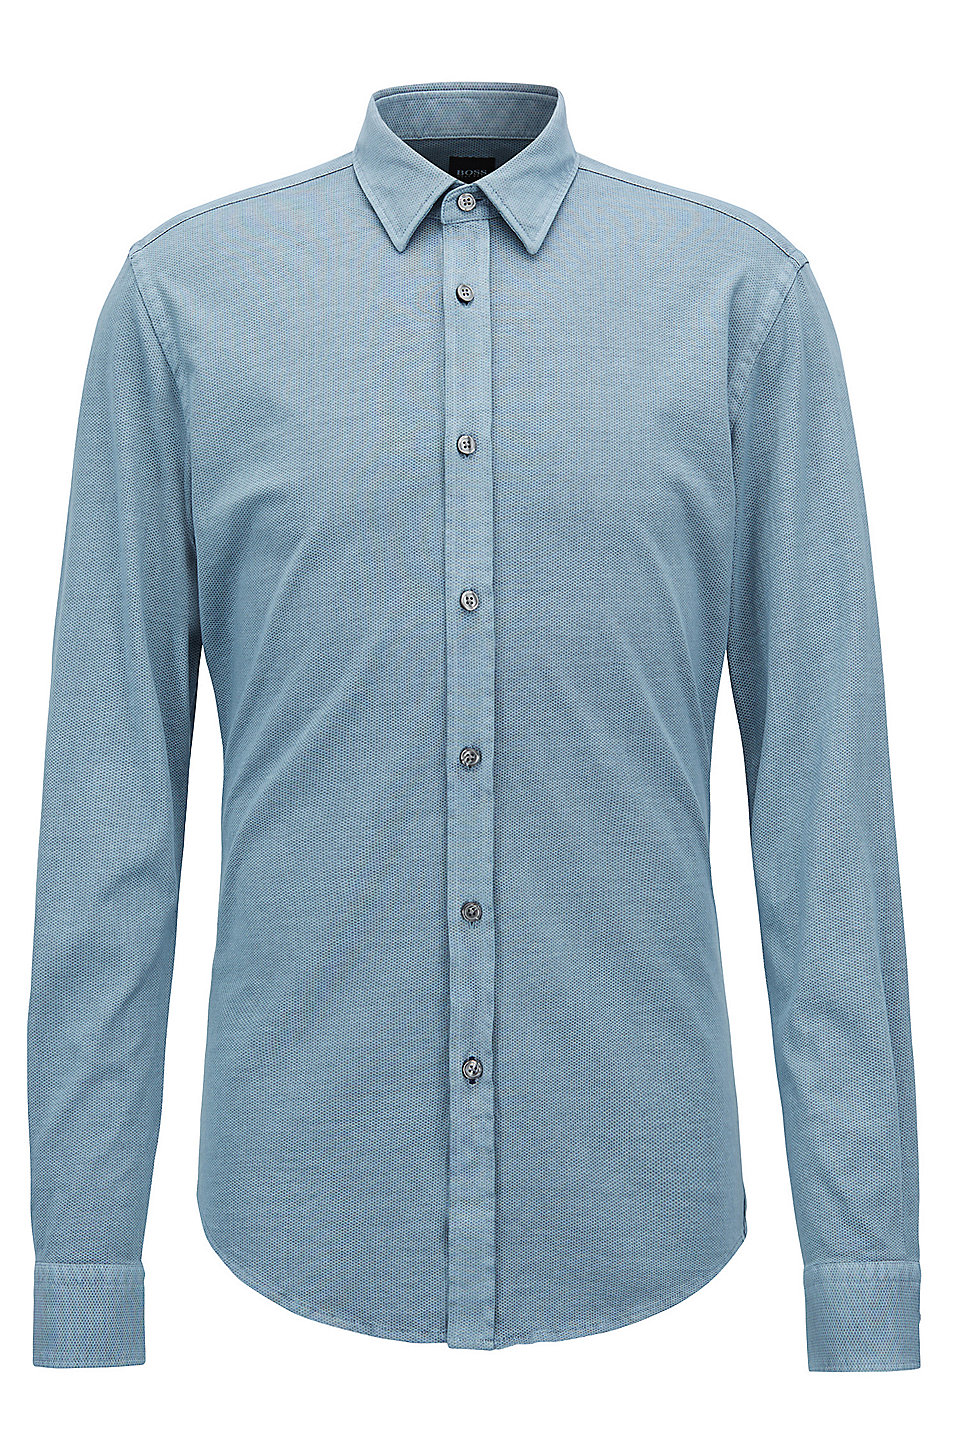 8692ec4a Slim-fit shirt in printed single-jersey cotton. Ronni - 50388902